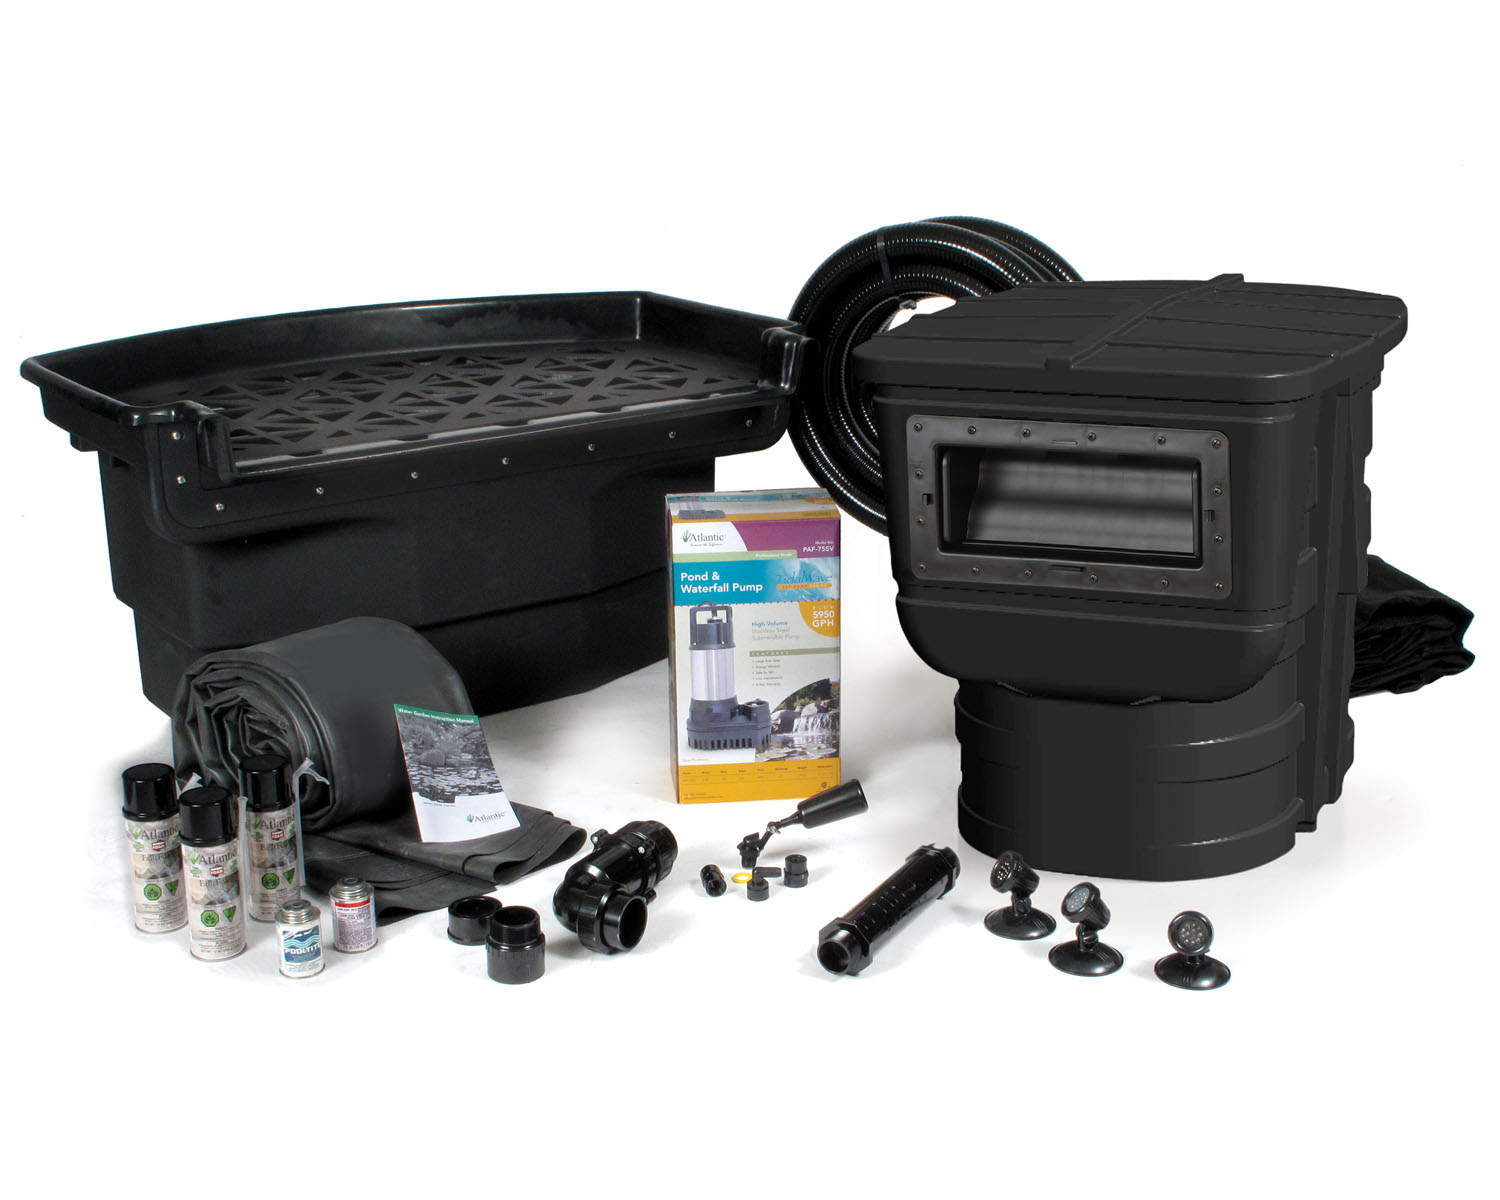 Professional pond kits from atlantic for Pond kits supplies